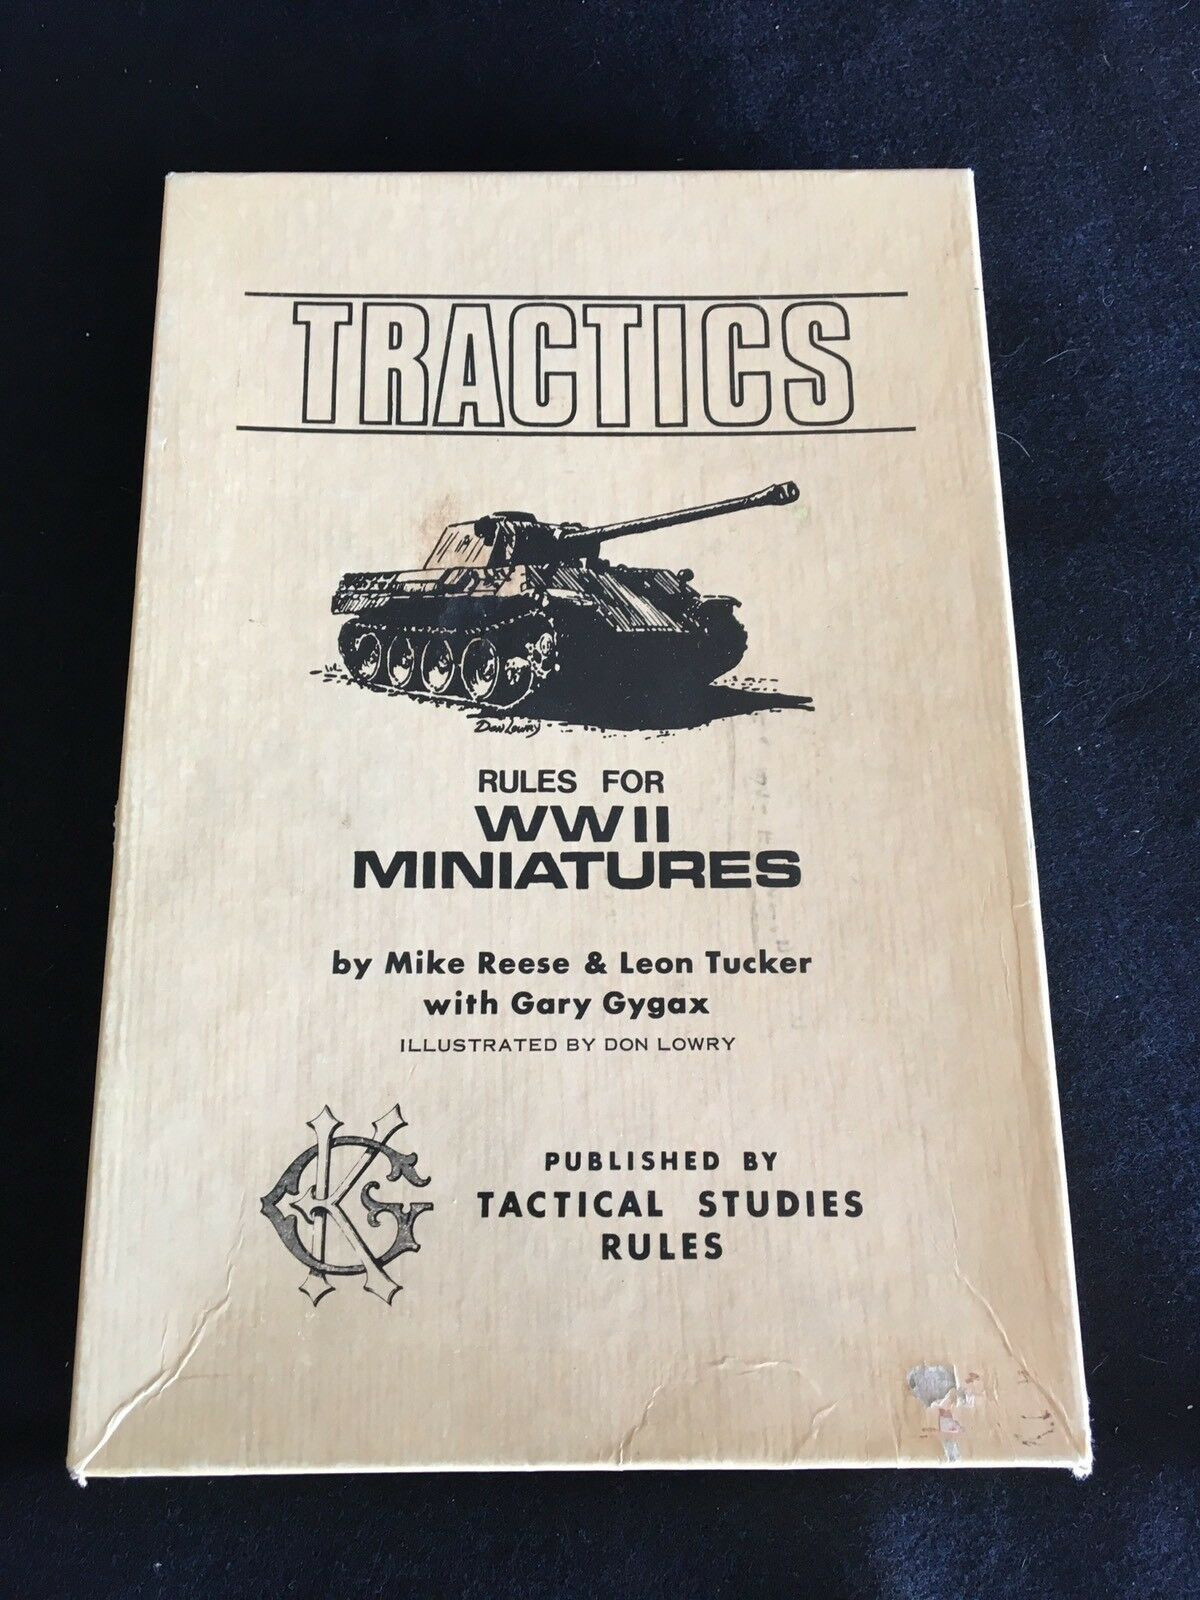 Tractics Rules For For For WWII Miniatures Tactical Studies Rules 1975 ec6089